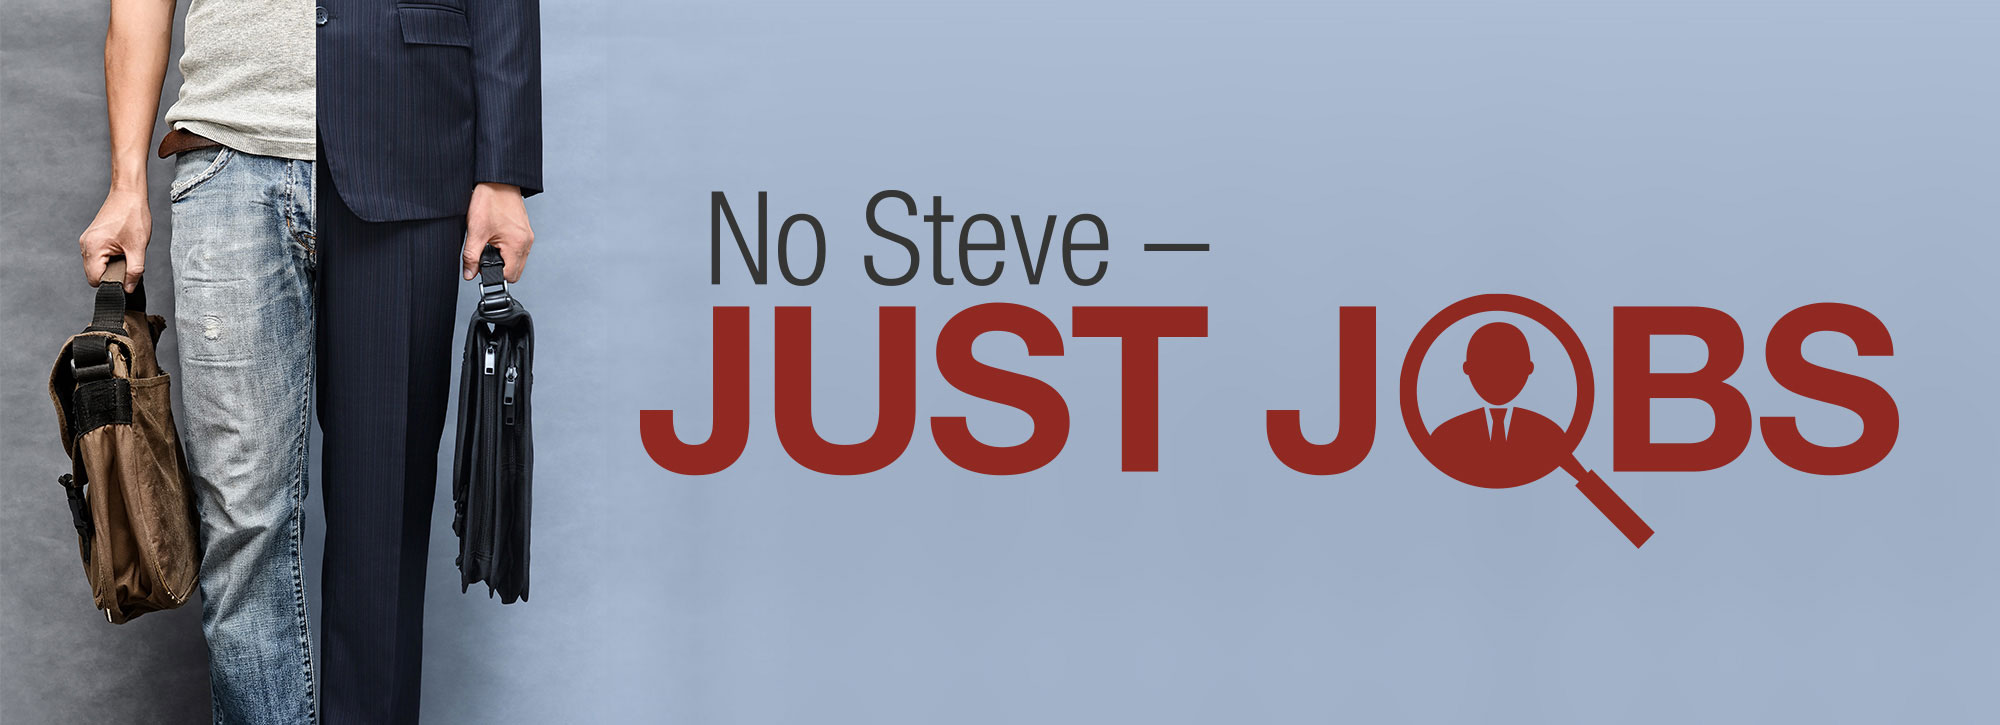 No Steve - Just Jobs